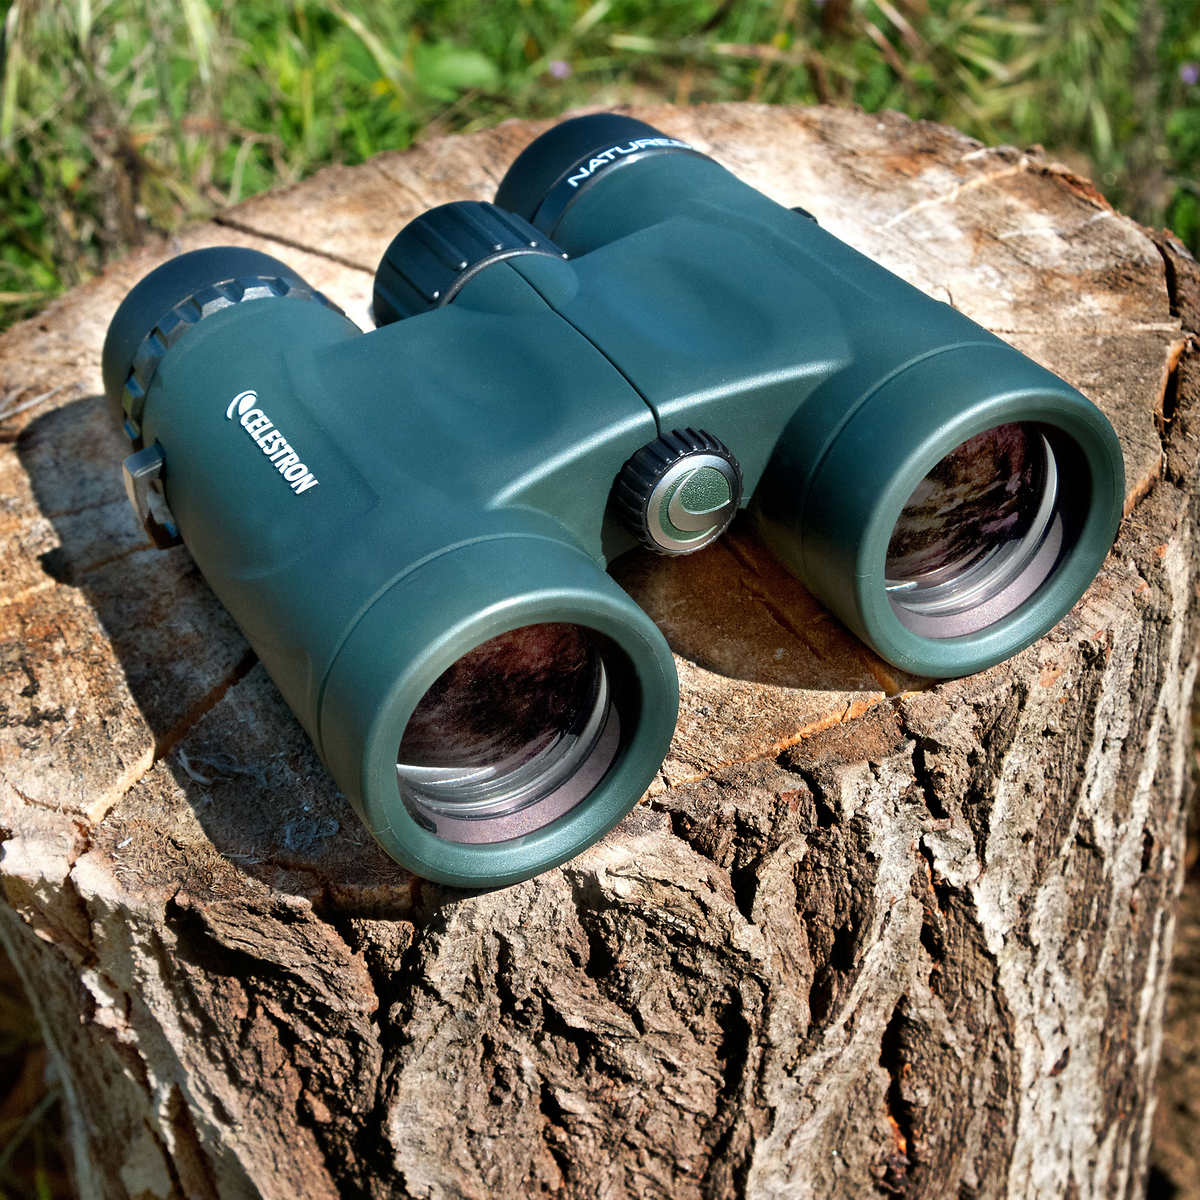 Celestron Nature DX 8 x 32 mm Binoculars